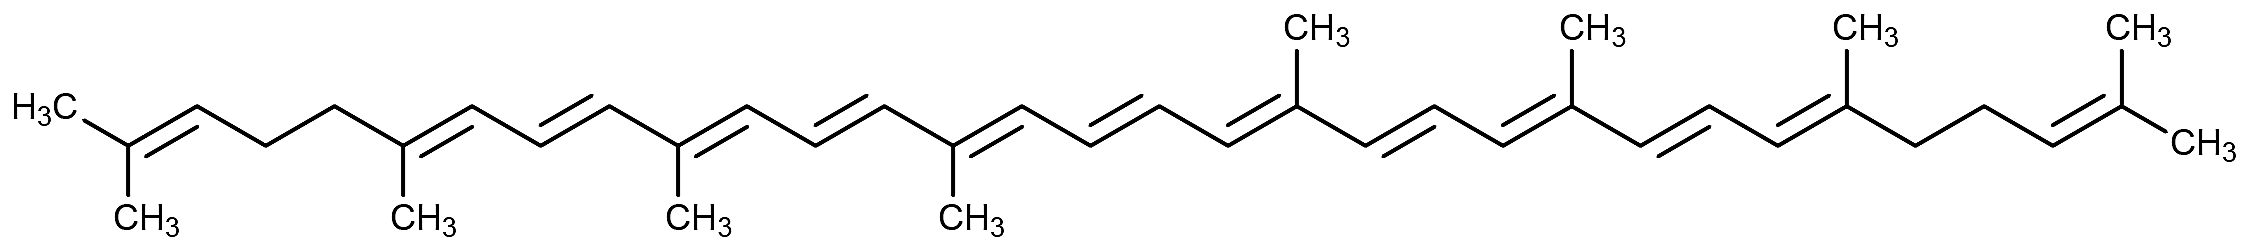 This is the chemical structure of lycopene.